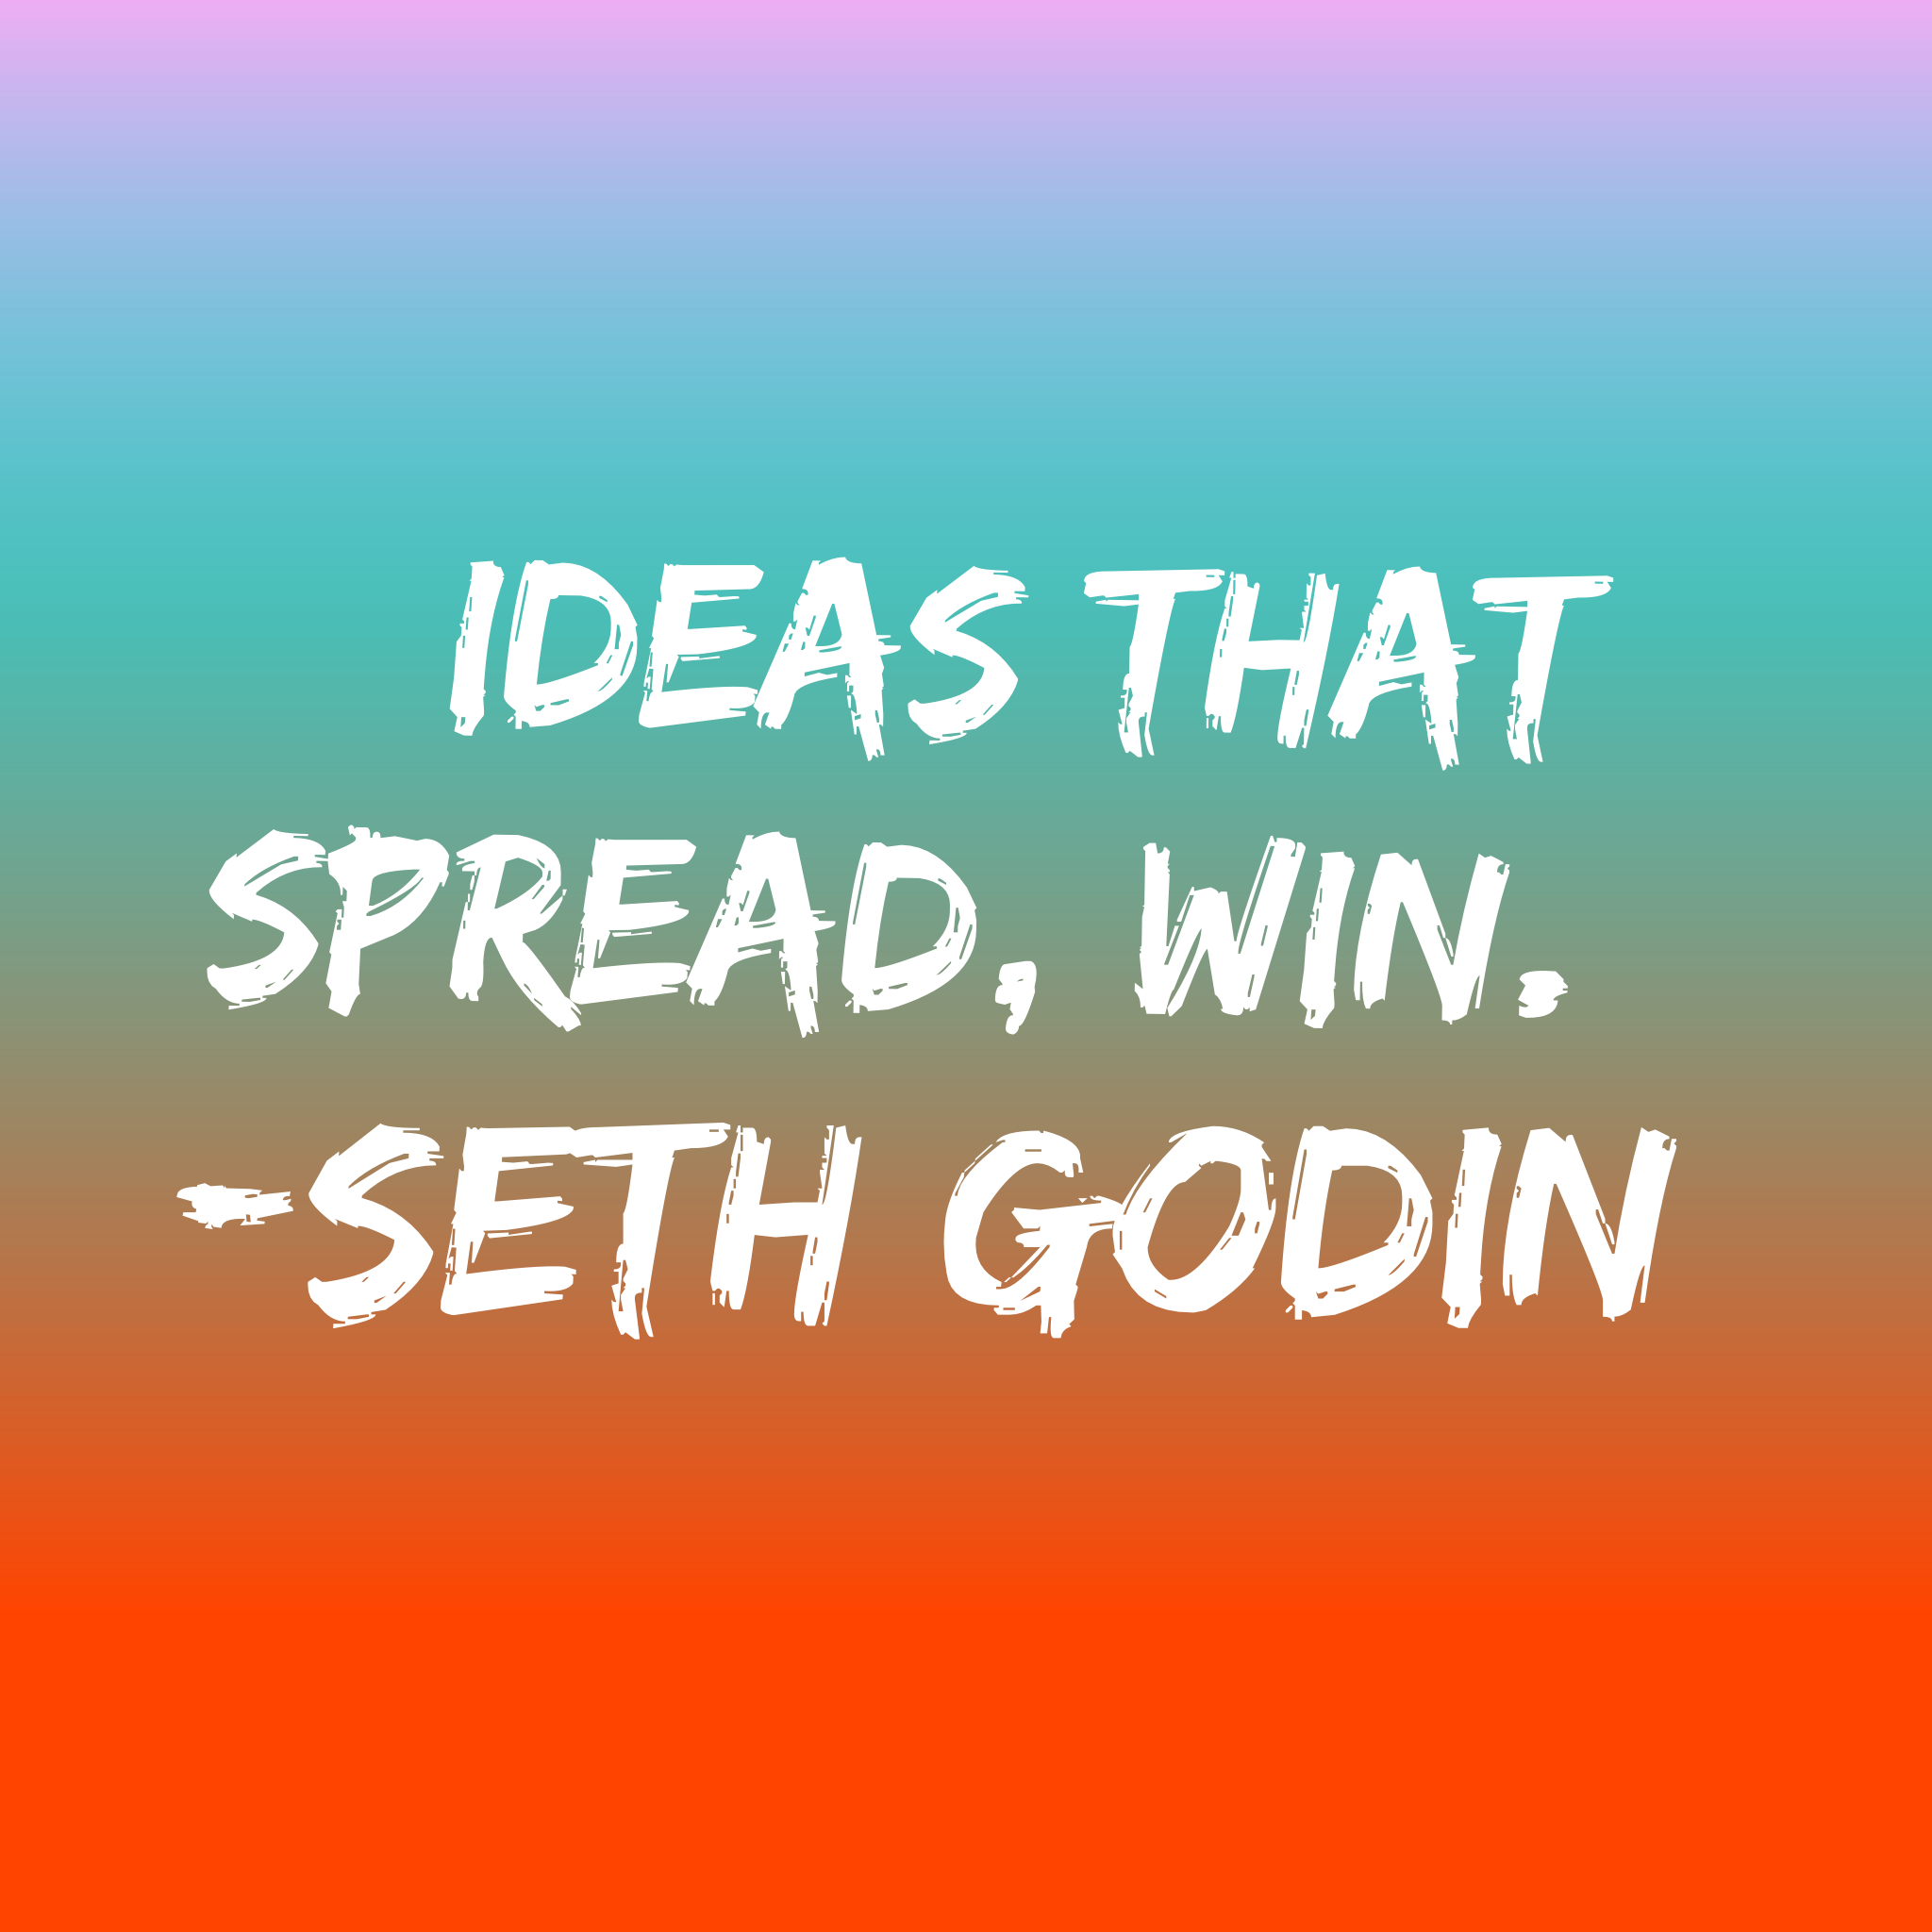 ideas that spread win seth godin quote|marketing tips entrepreneur